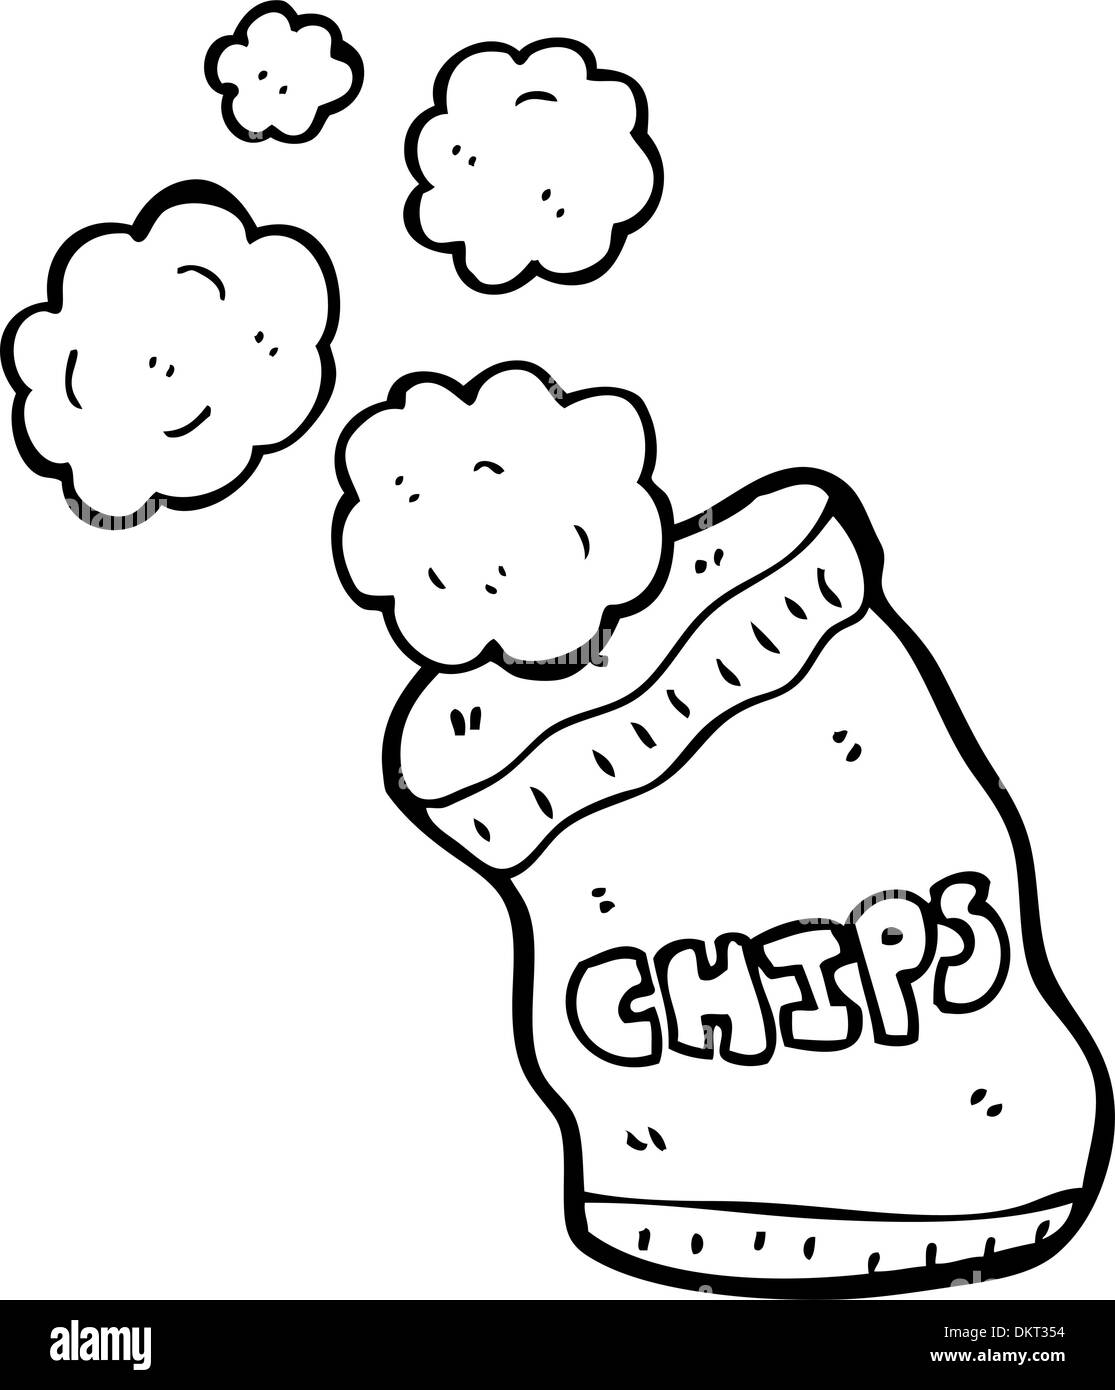 Cartoon-Kartoffel-chips Stock Vektor